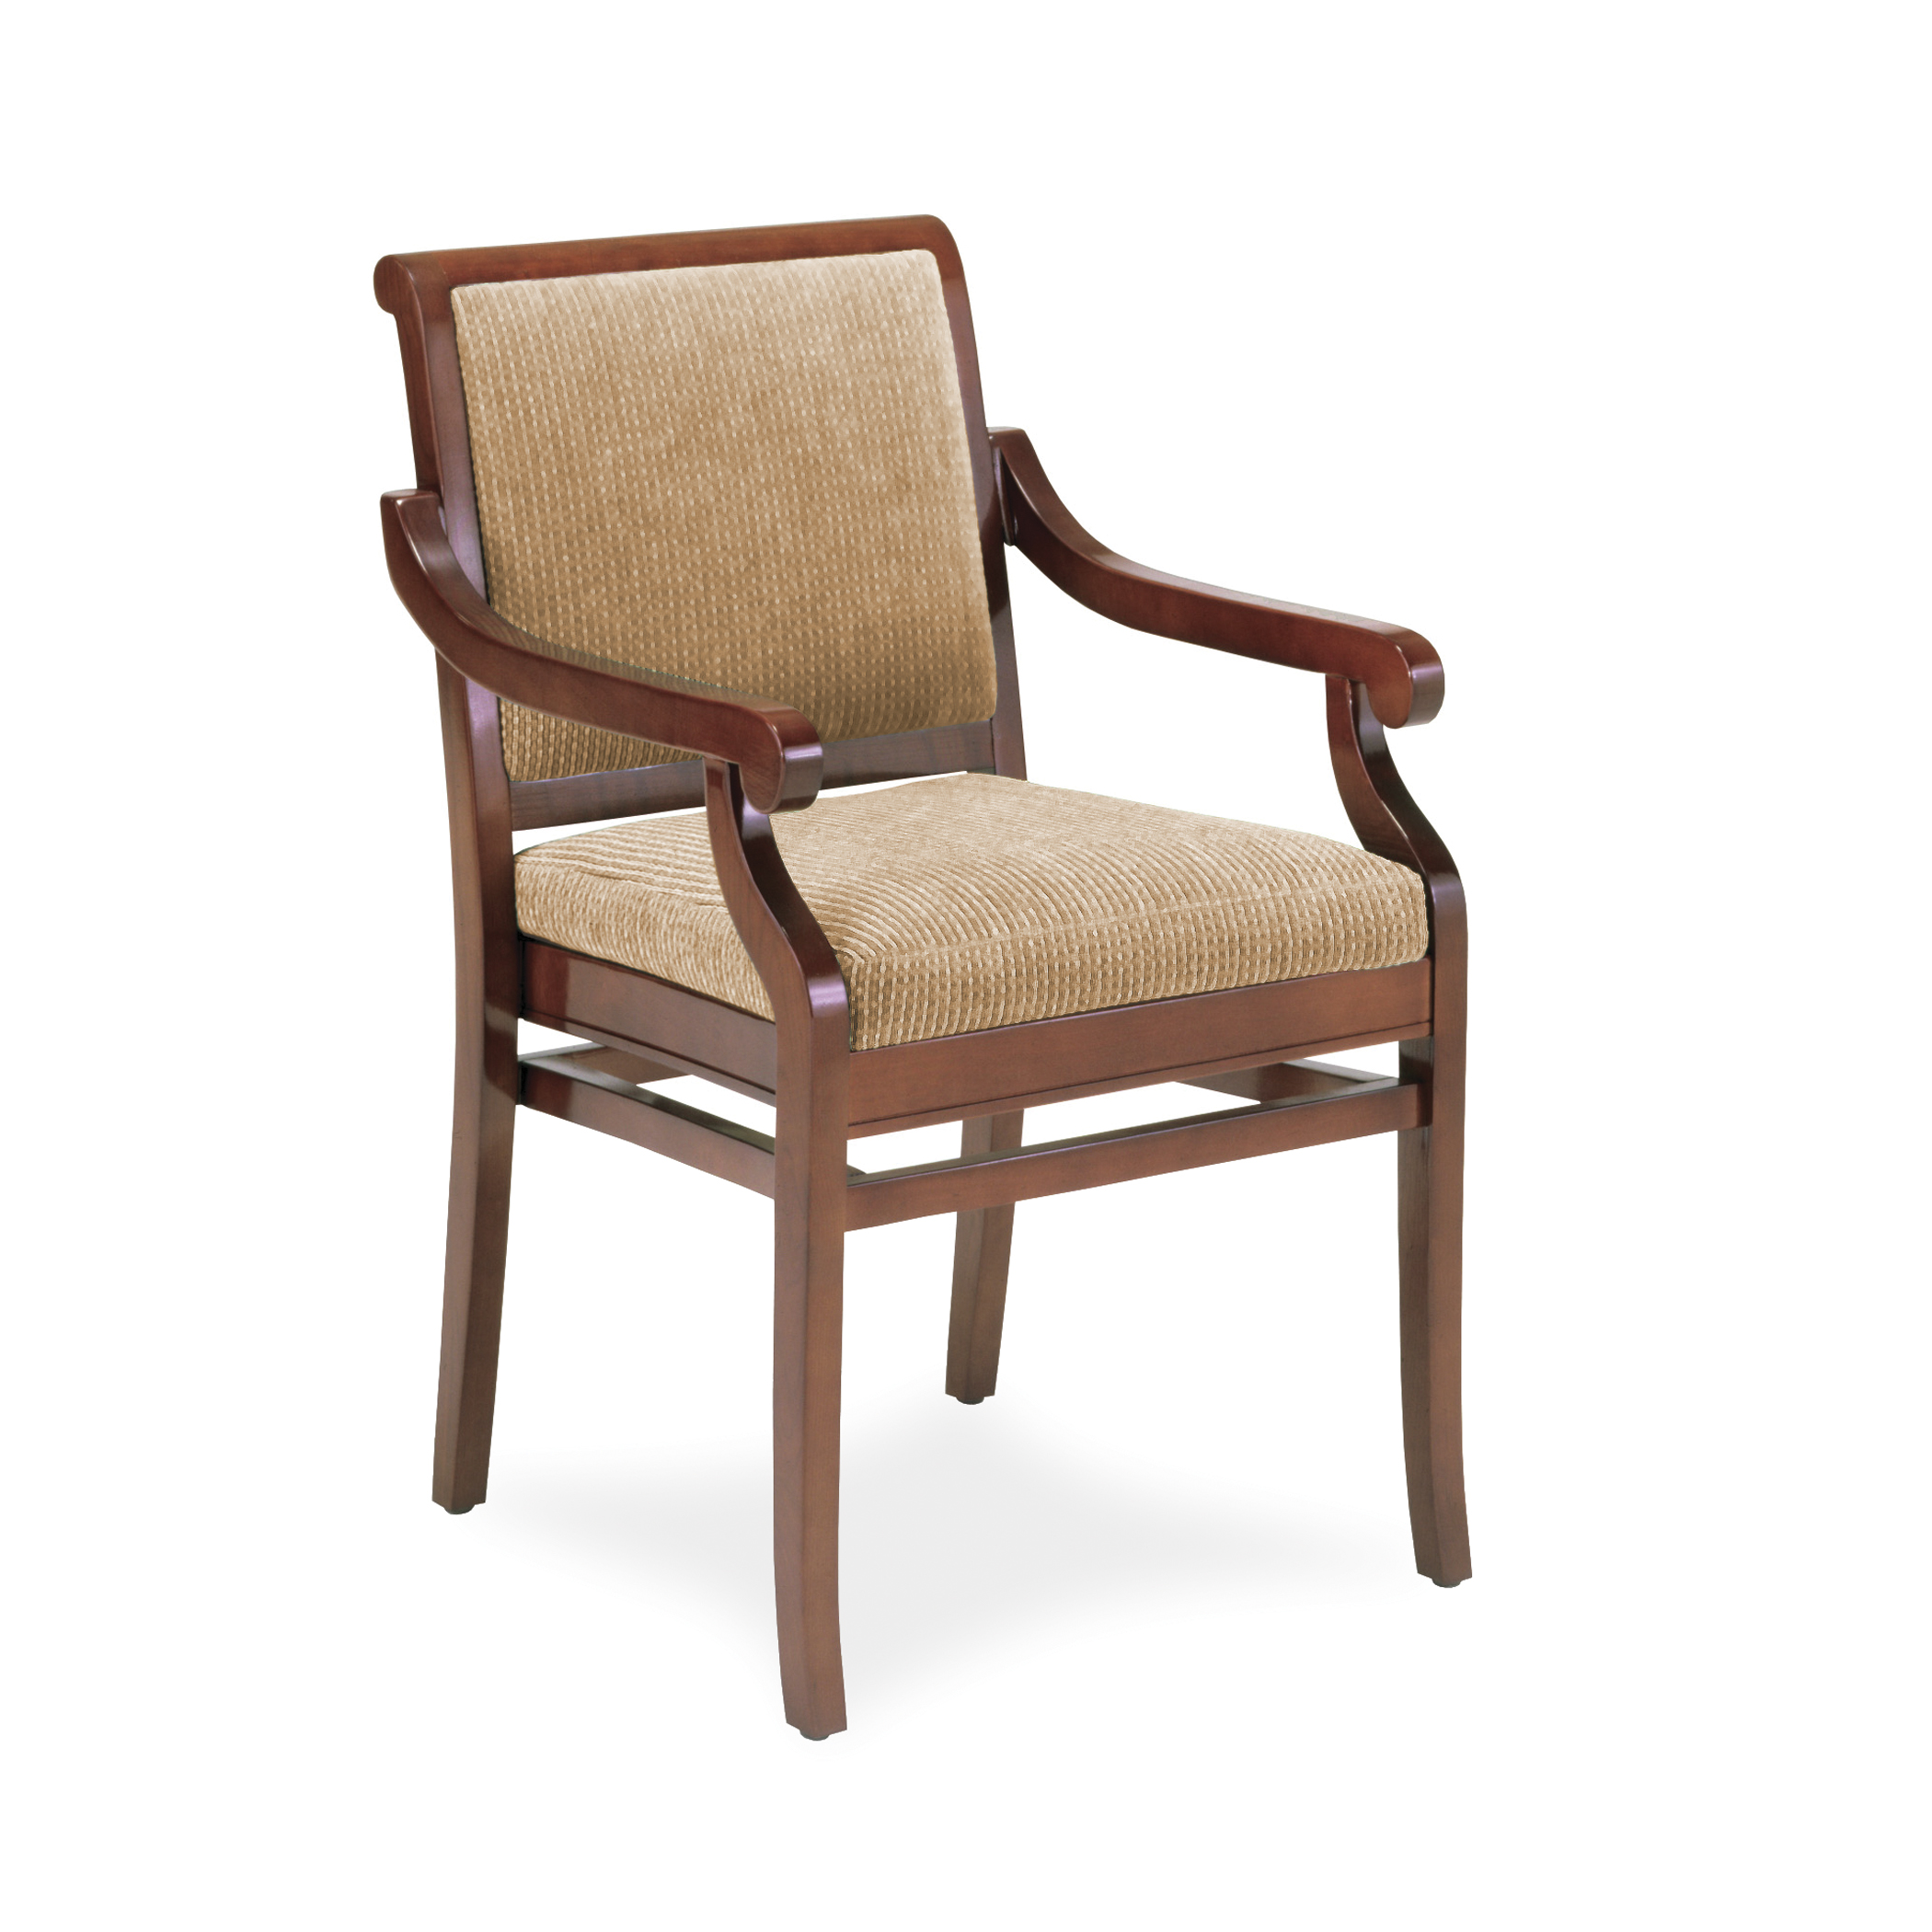 Wood Arm Chair 4012 Stacking Wood Arm Chair